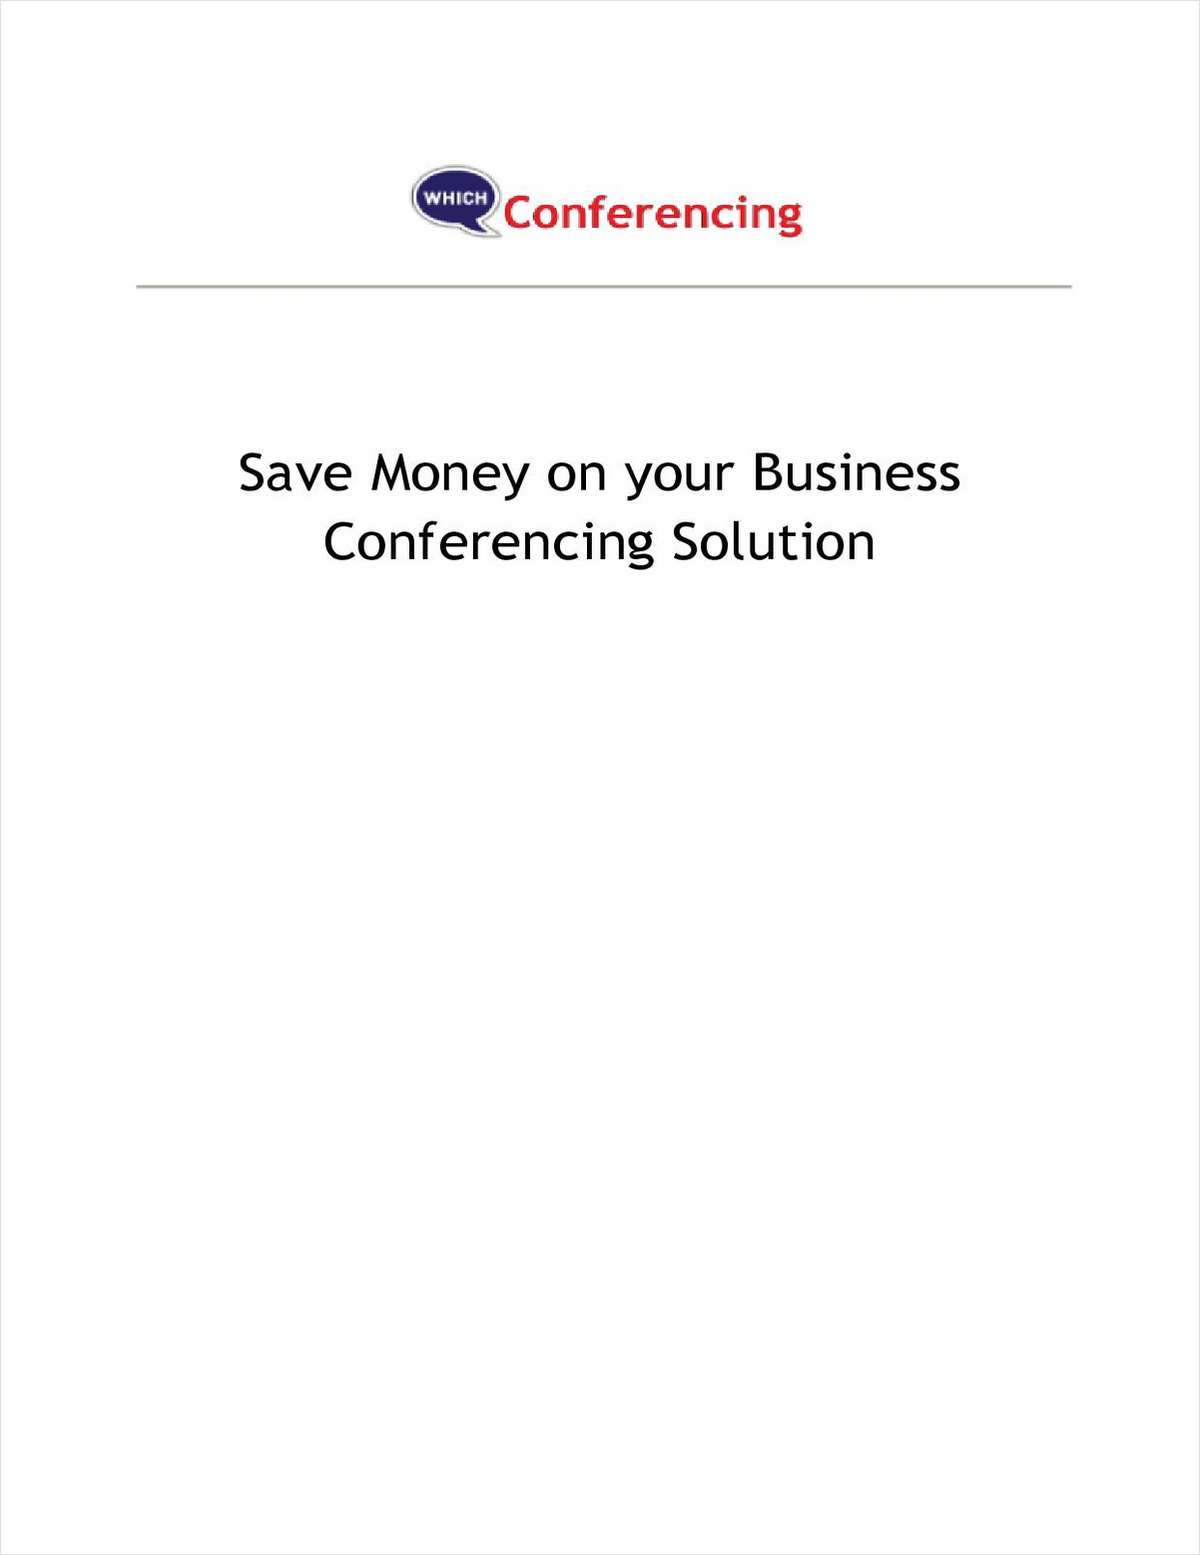 Comparison Guide for Web/Audio Conferencing Systems for Your Business